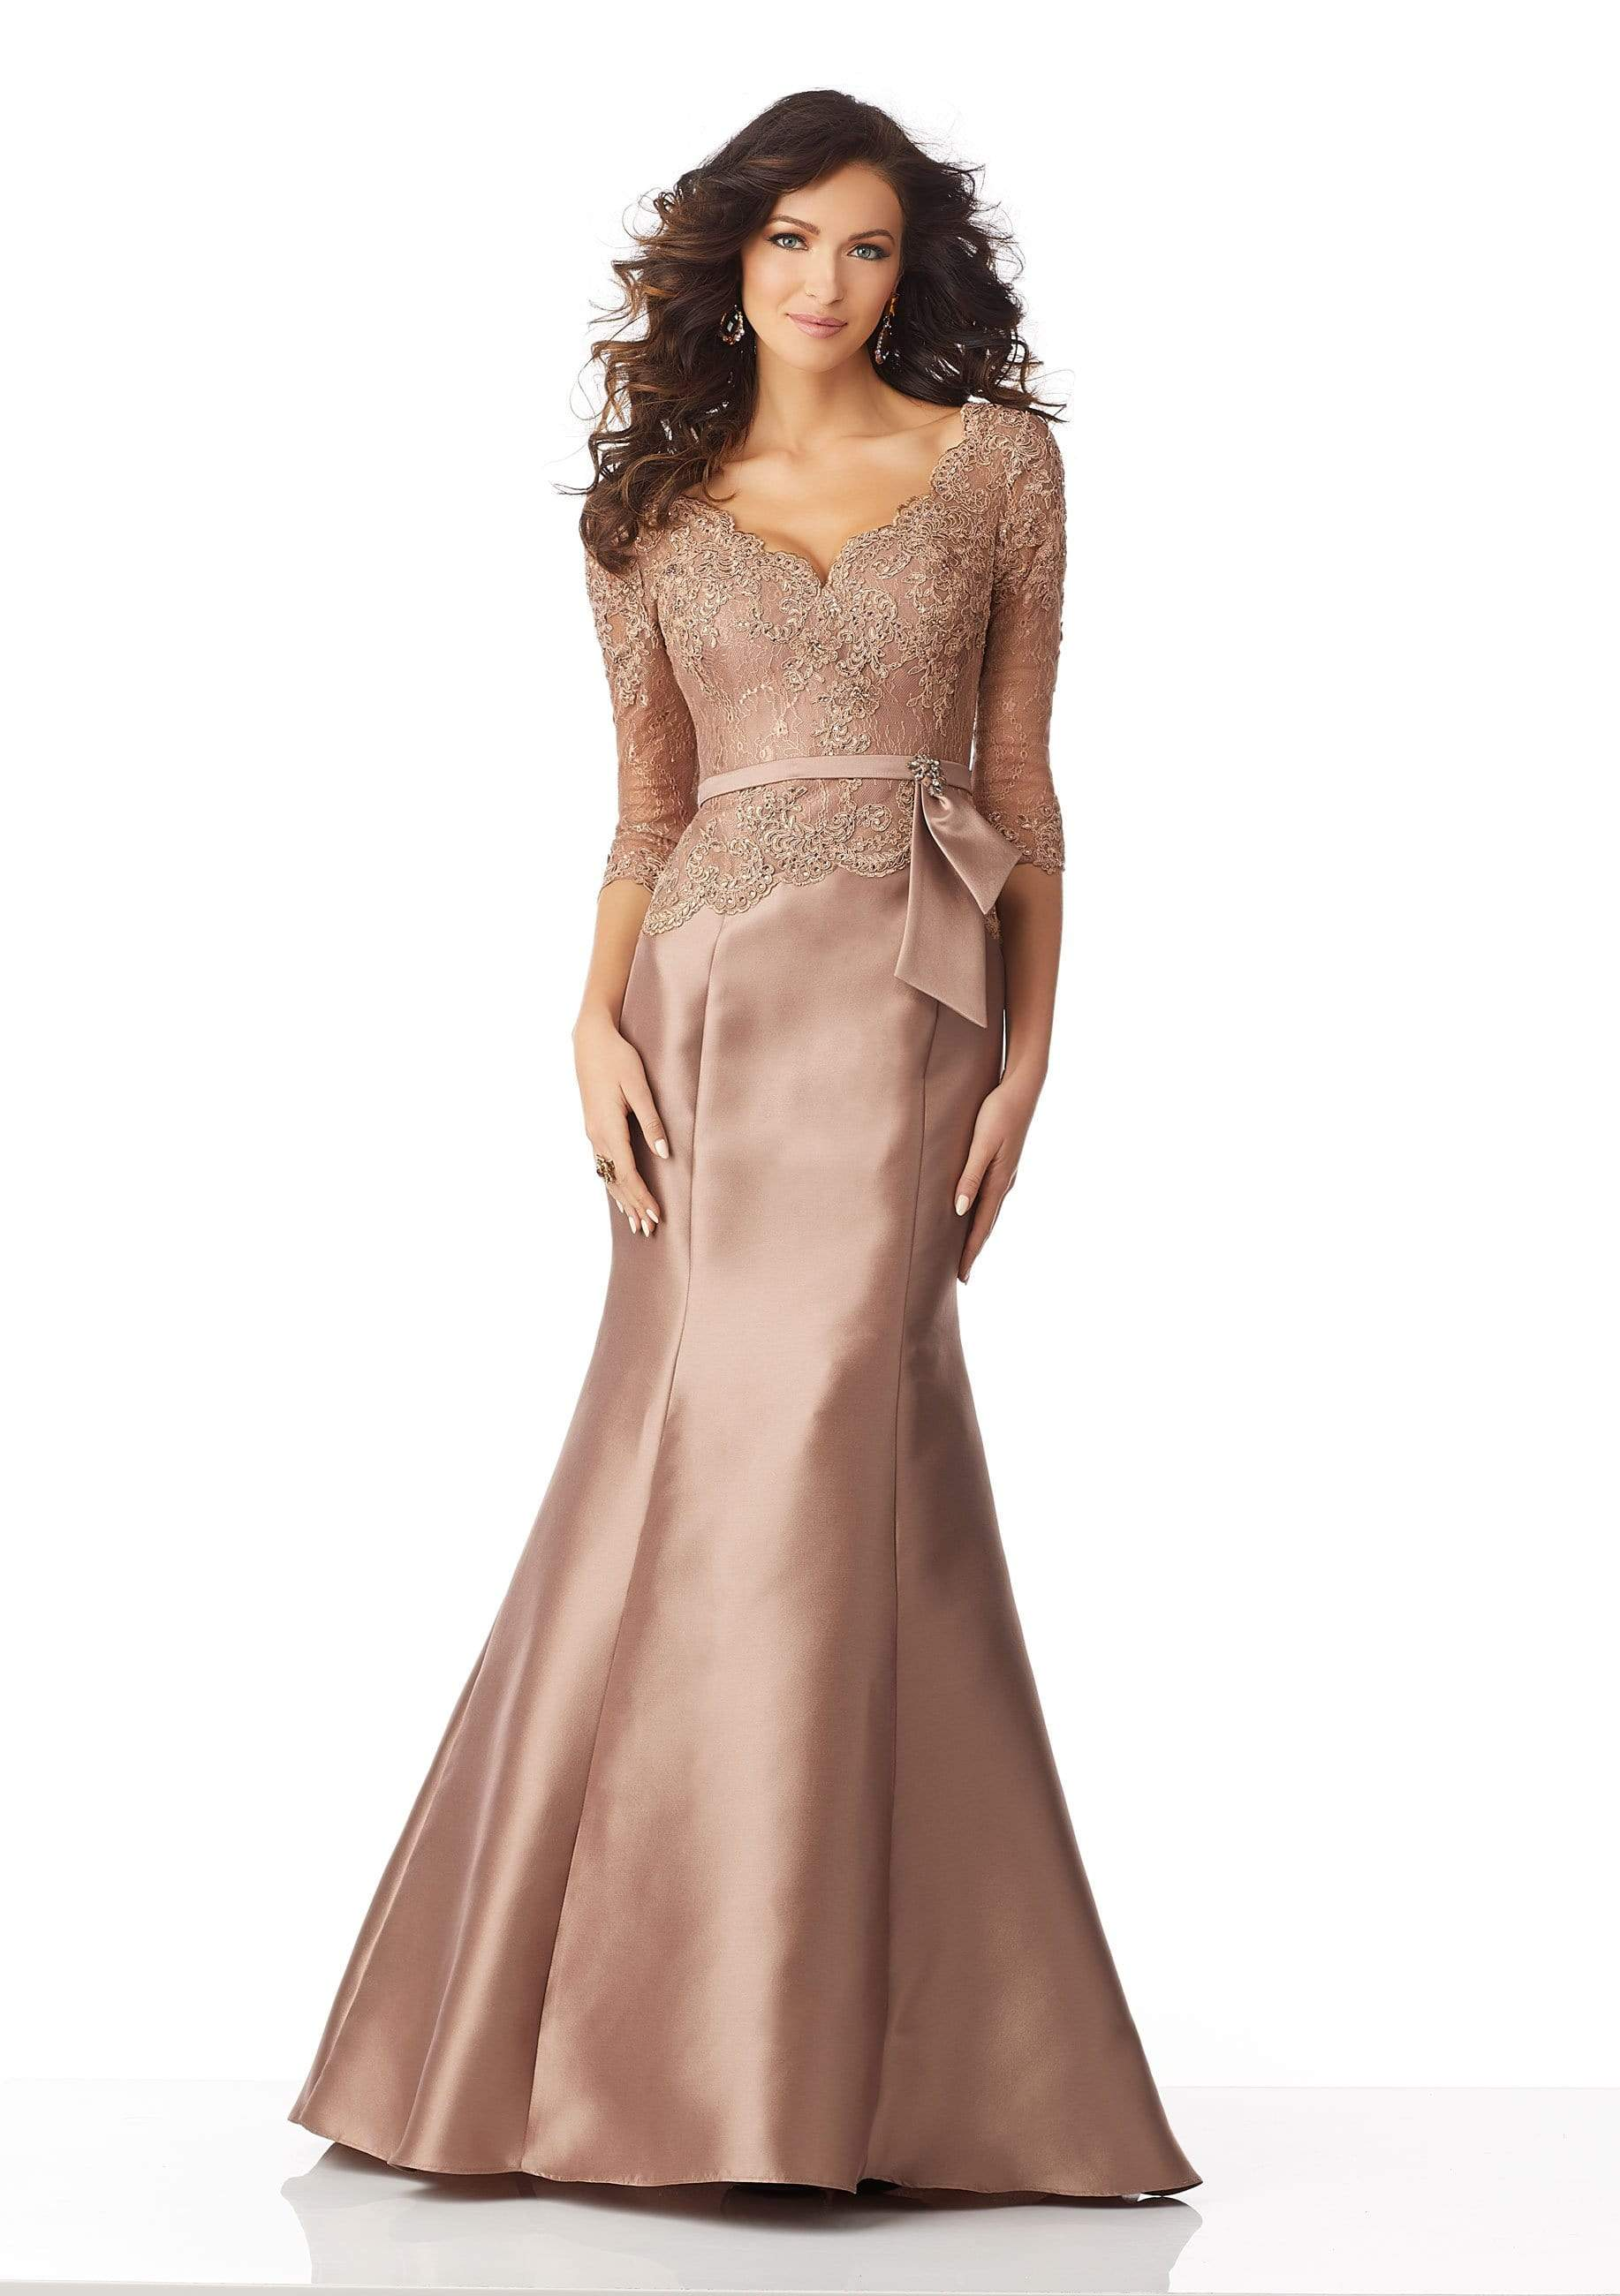 MGNY By Mori Lee - 71817 Beaded Lace Quarter Sleeves Trumpet Gown Evening Dresses 0 / Bronze